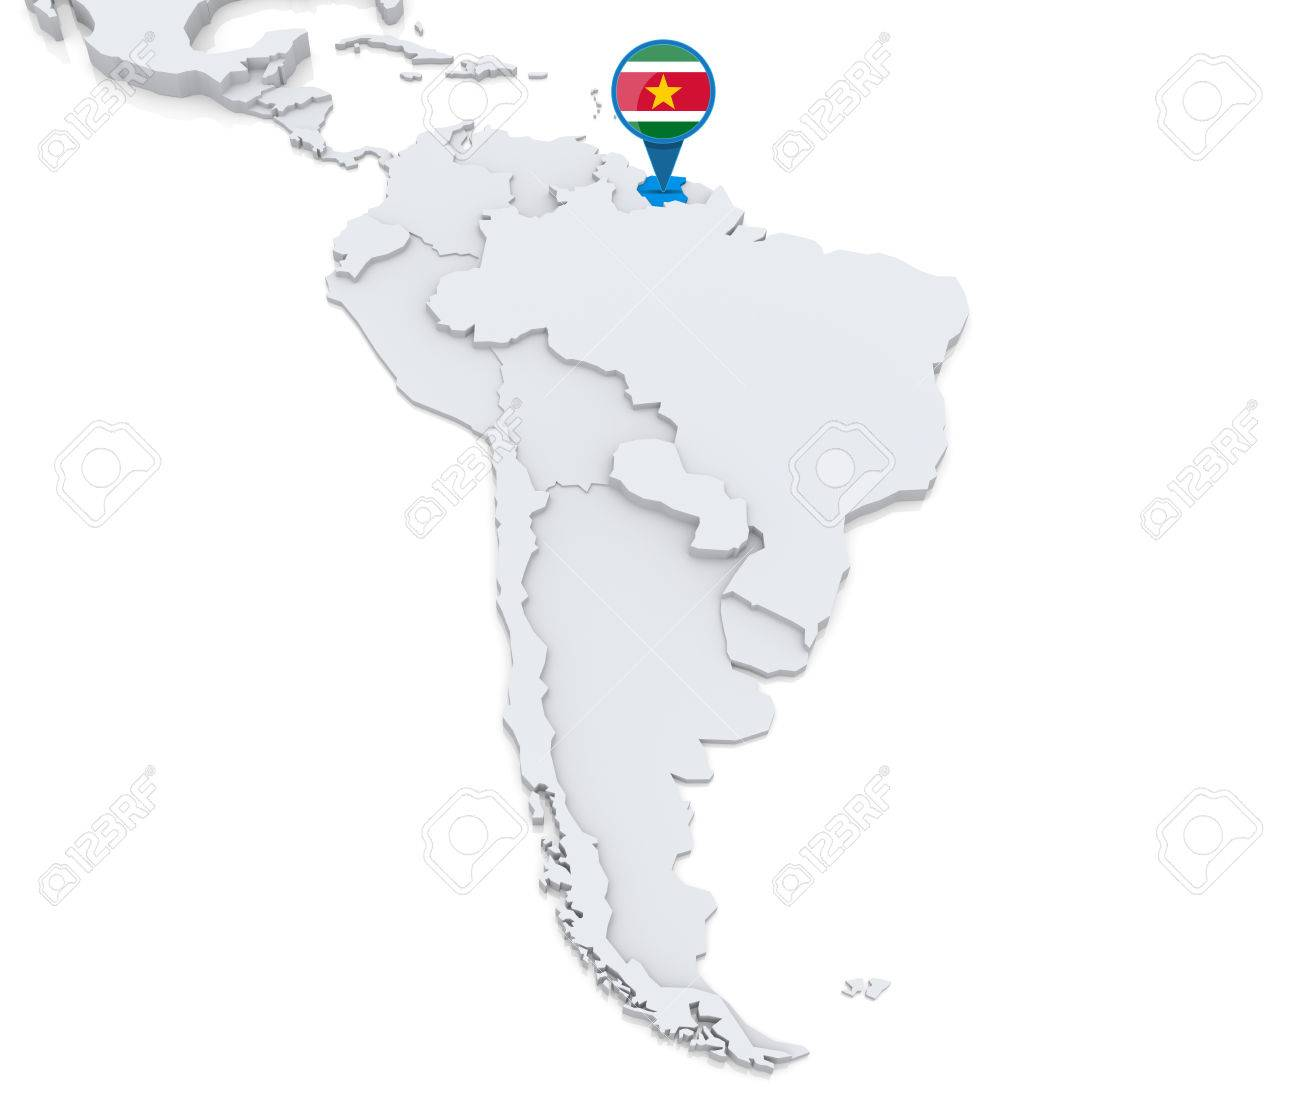 Highlighted Suriname On Map Of South America With National Flag